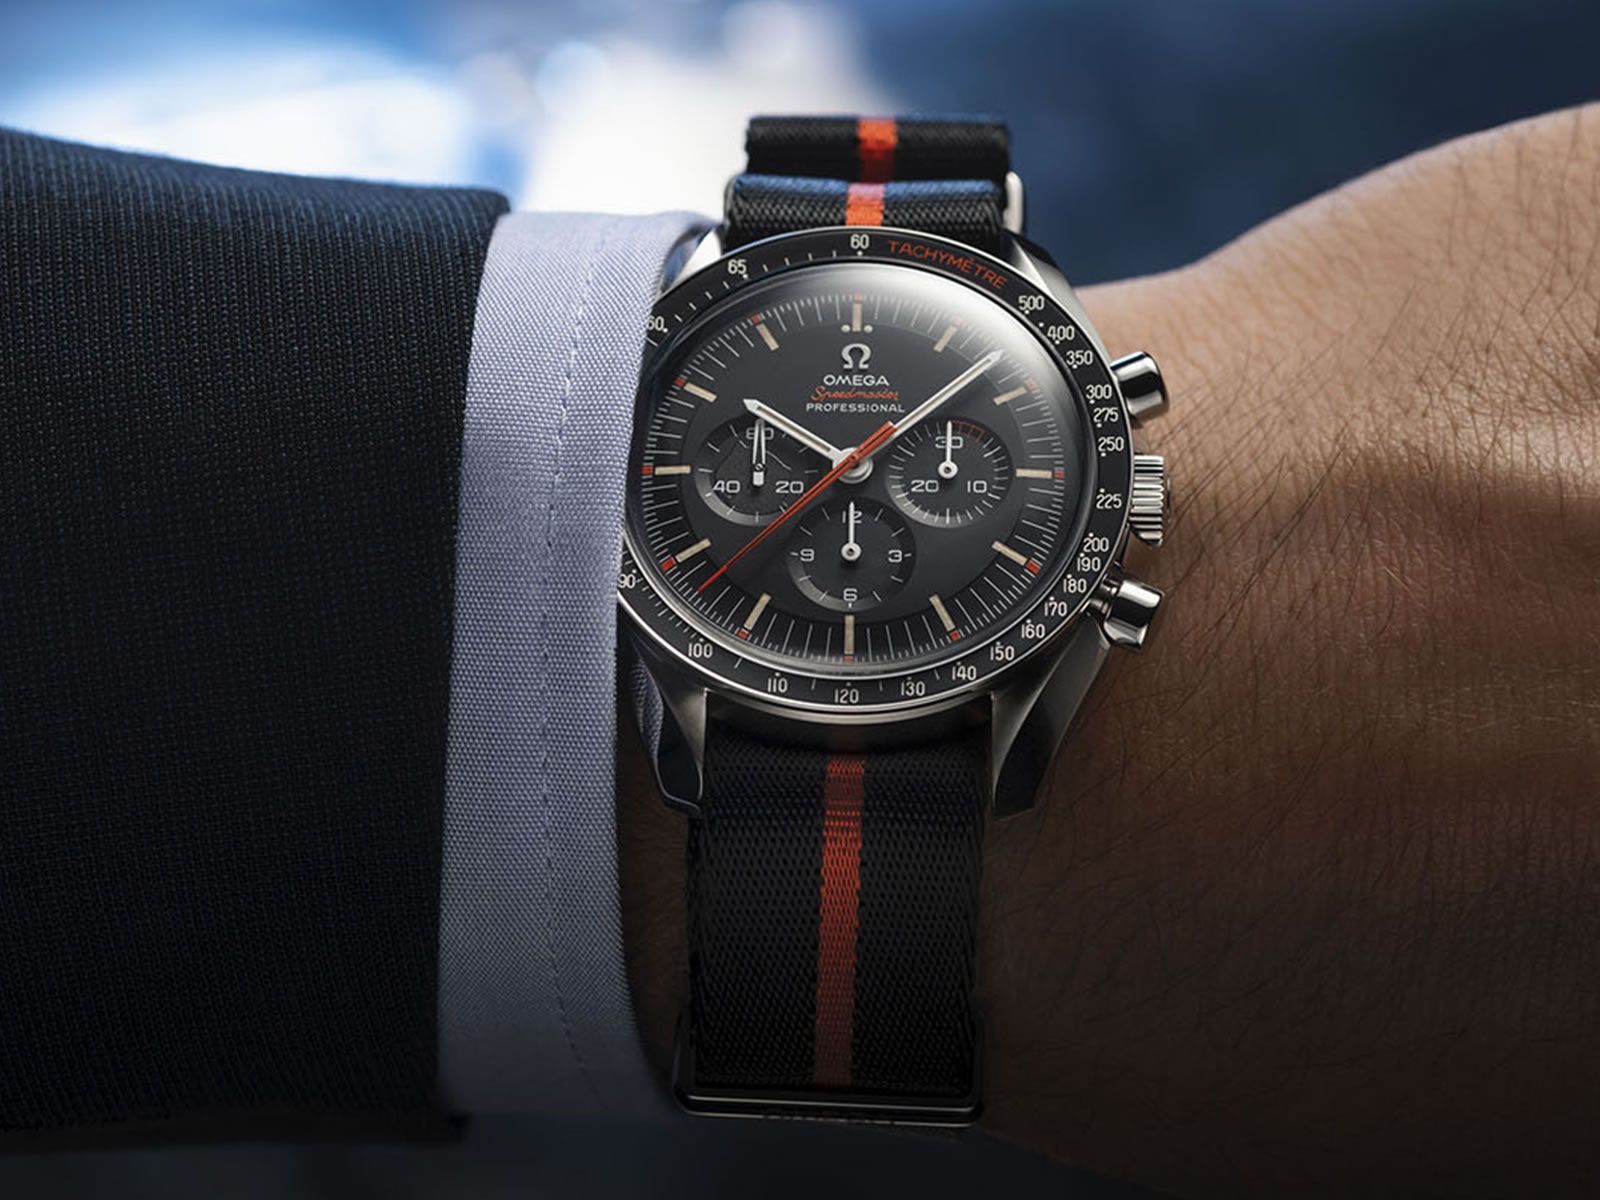 311-12-42-30-01-001-omega-speedmaster-limited-edition-42mm-ultraman-8-.jpg